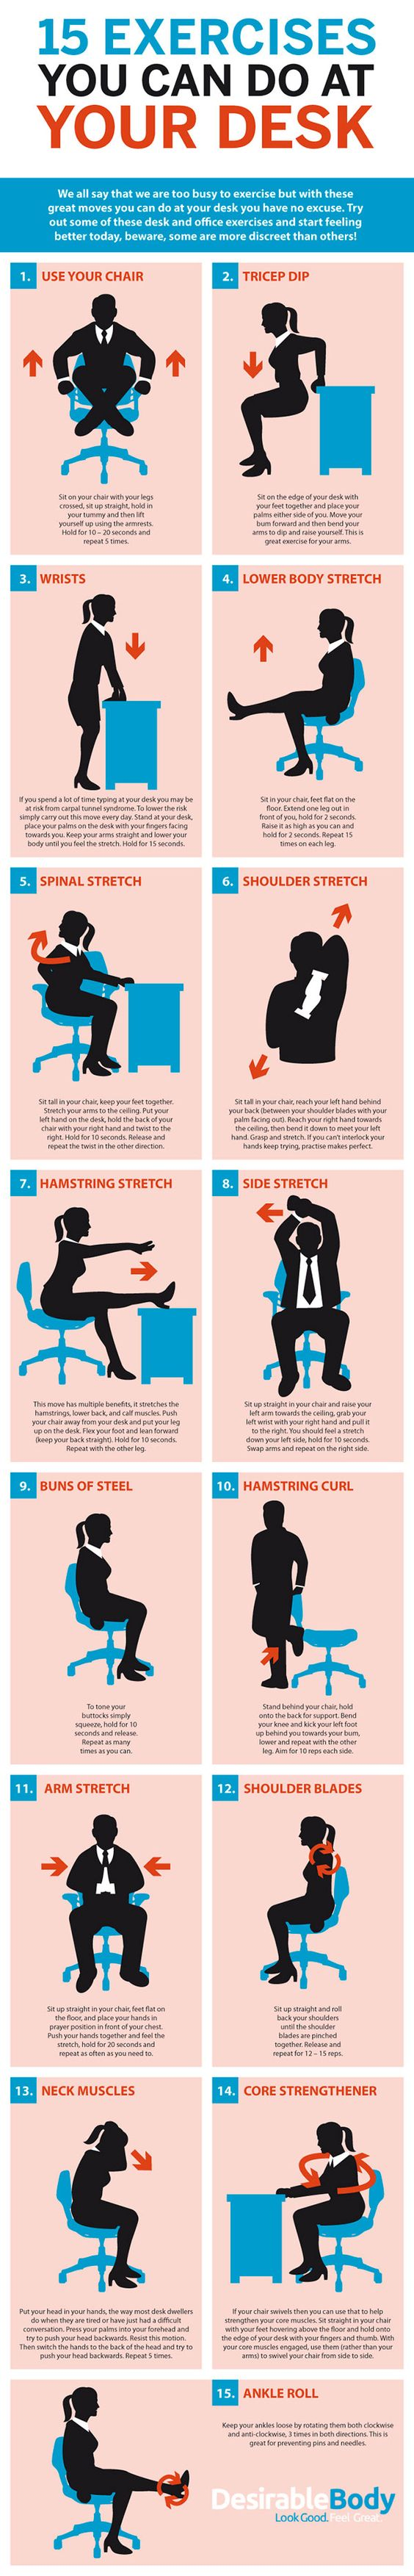 How To Squeeze In More Exercise No Matter How Long You're Stuck At Your Desk: